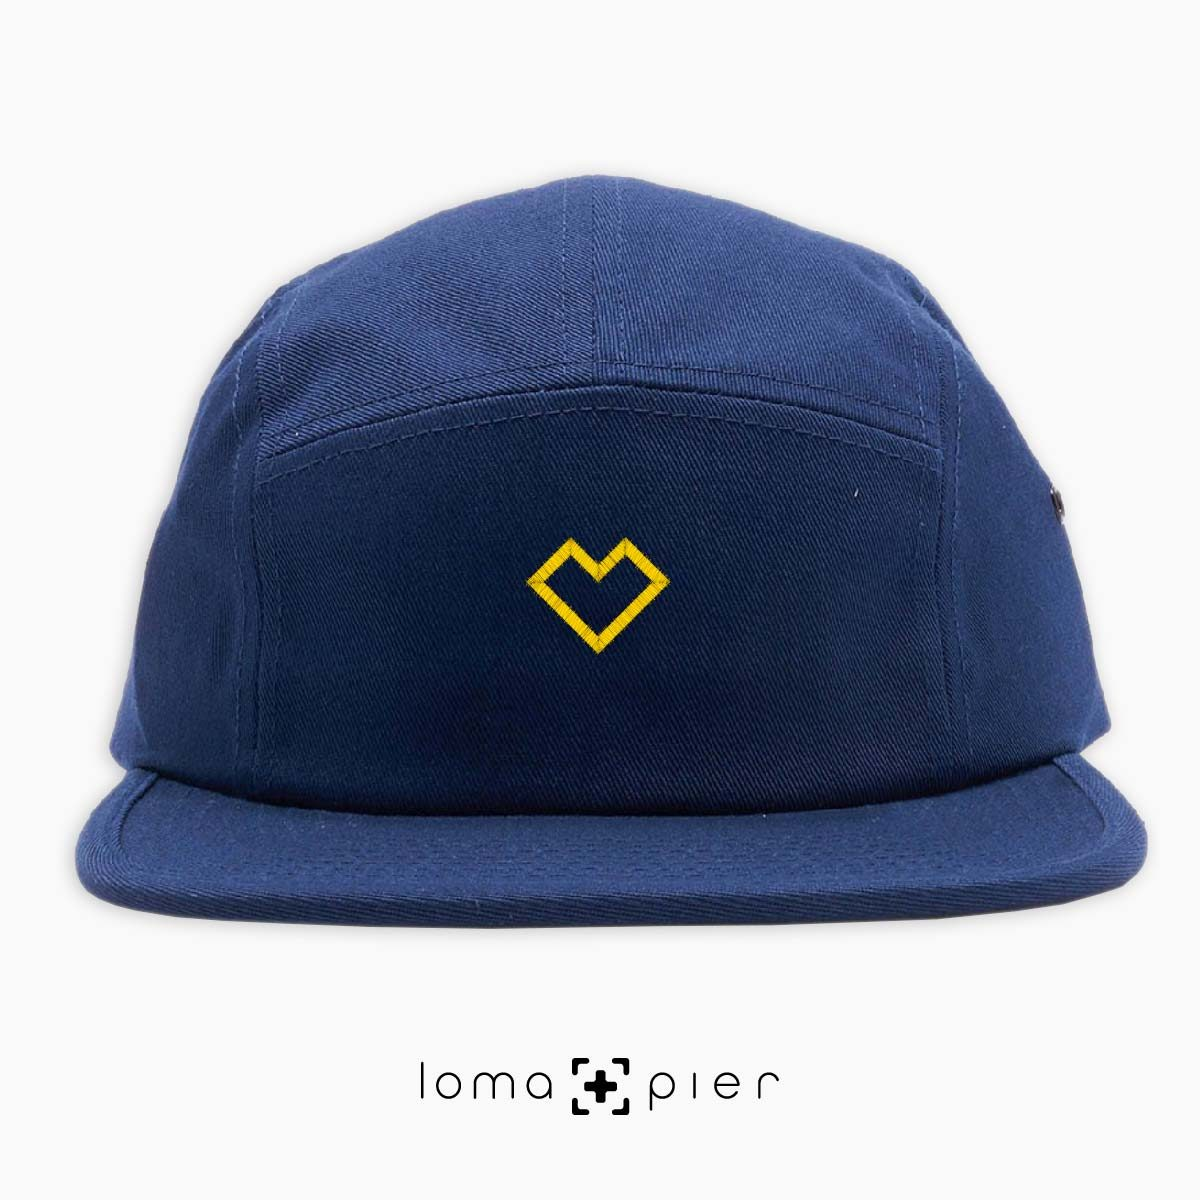 EDGY HEART typography embroidered on a navy blue cotton 5-panel hat with yellow thread by loma+pier hat store